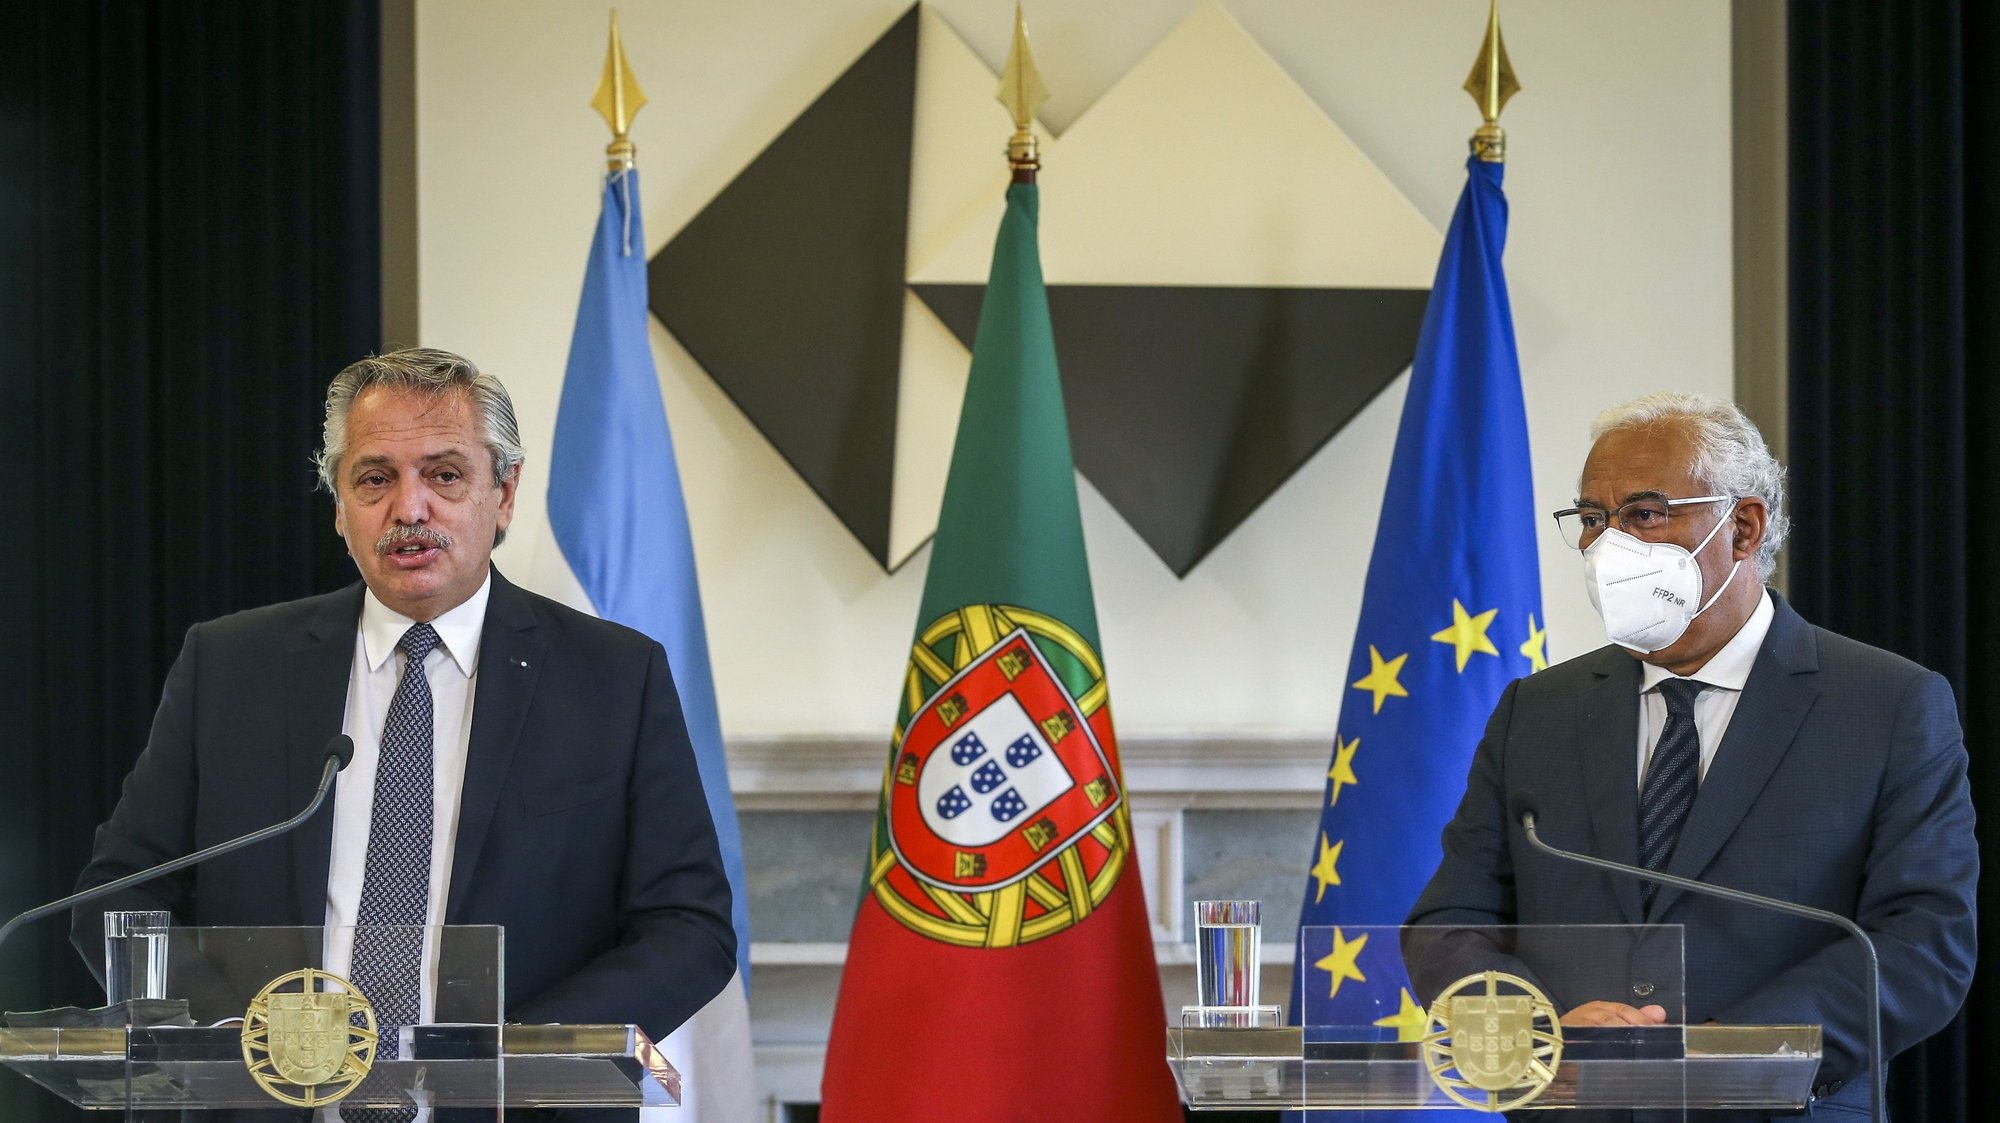 Argentine President Alberto Fernandez (L) and Portuguese Prime Minister Antonio Costa (R) attend a press conference at the end of a meeting at Sao Bento Palace in Lisbon, Portugal, 10 May 2021. RODRIGO ANTUNES/LUSA